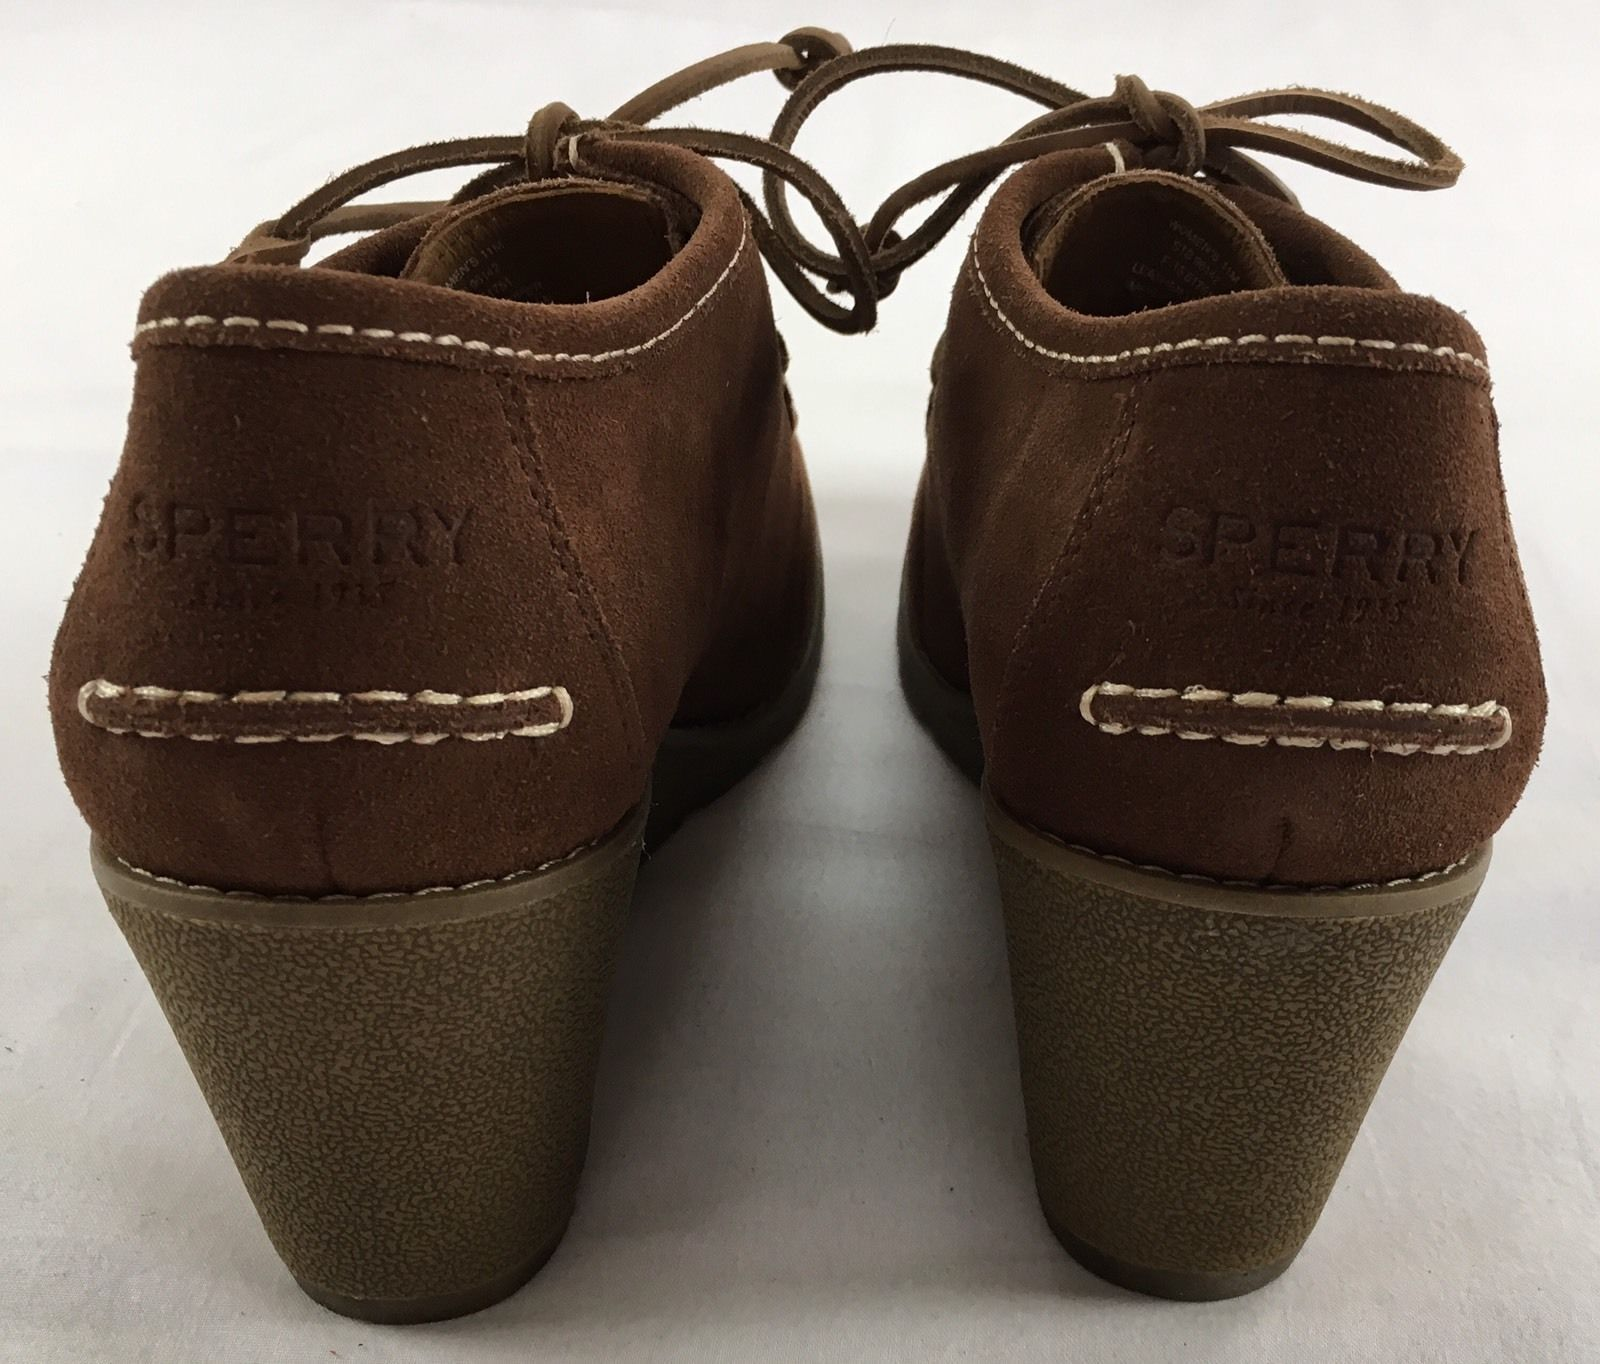 a913e96db0a SPERRY TOP-SIDER Wedge Booties Stella Keel Brown Suede Leather Boots Shoes  11